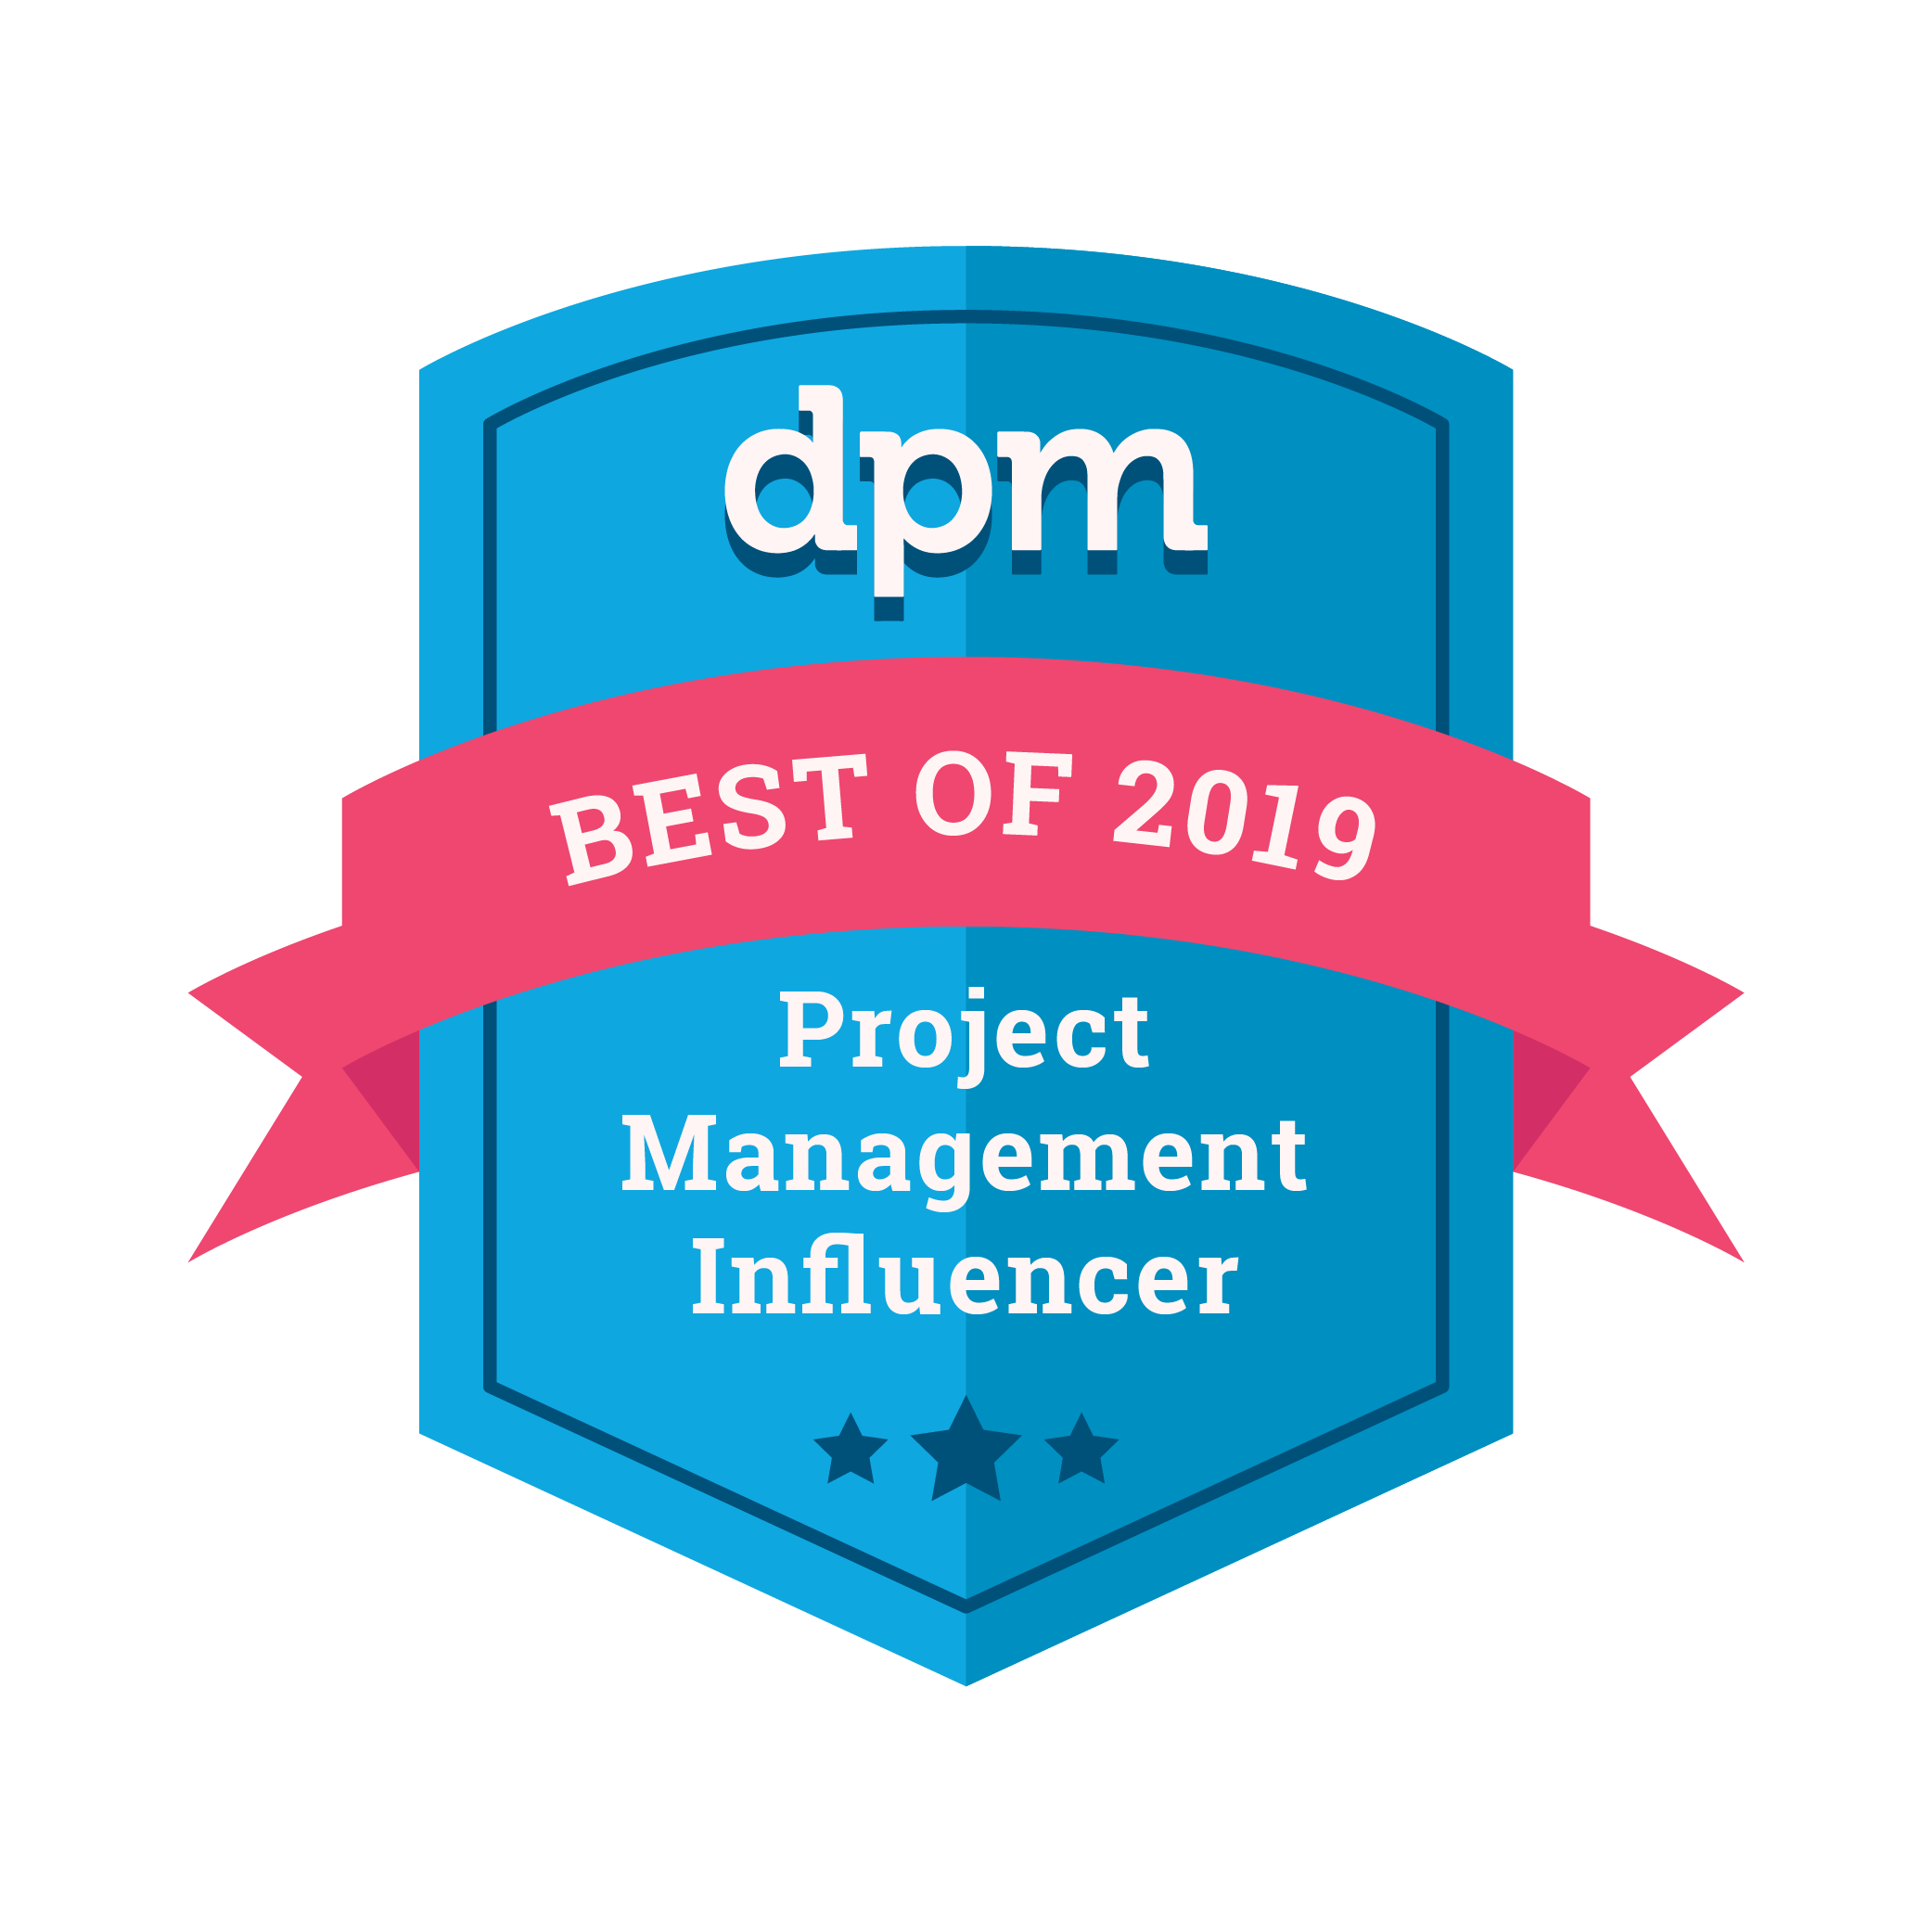 top-rated-badge-project-management-influencer.png